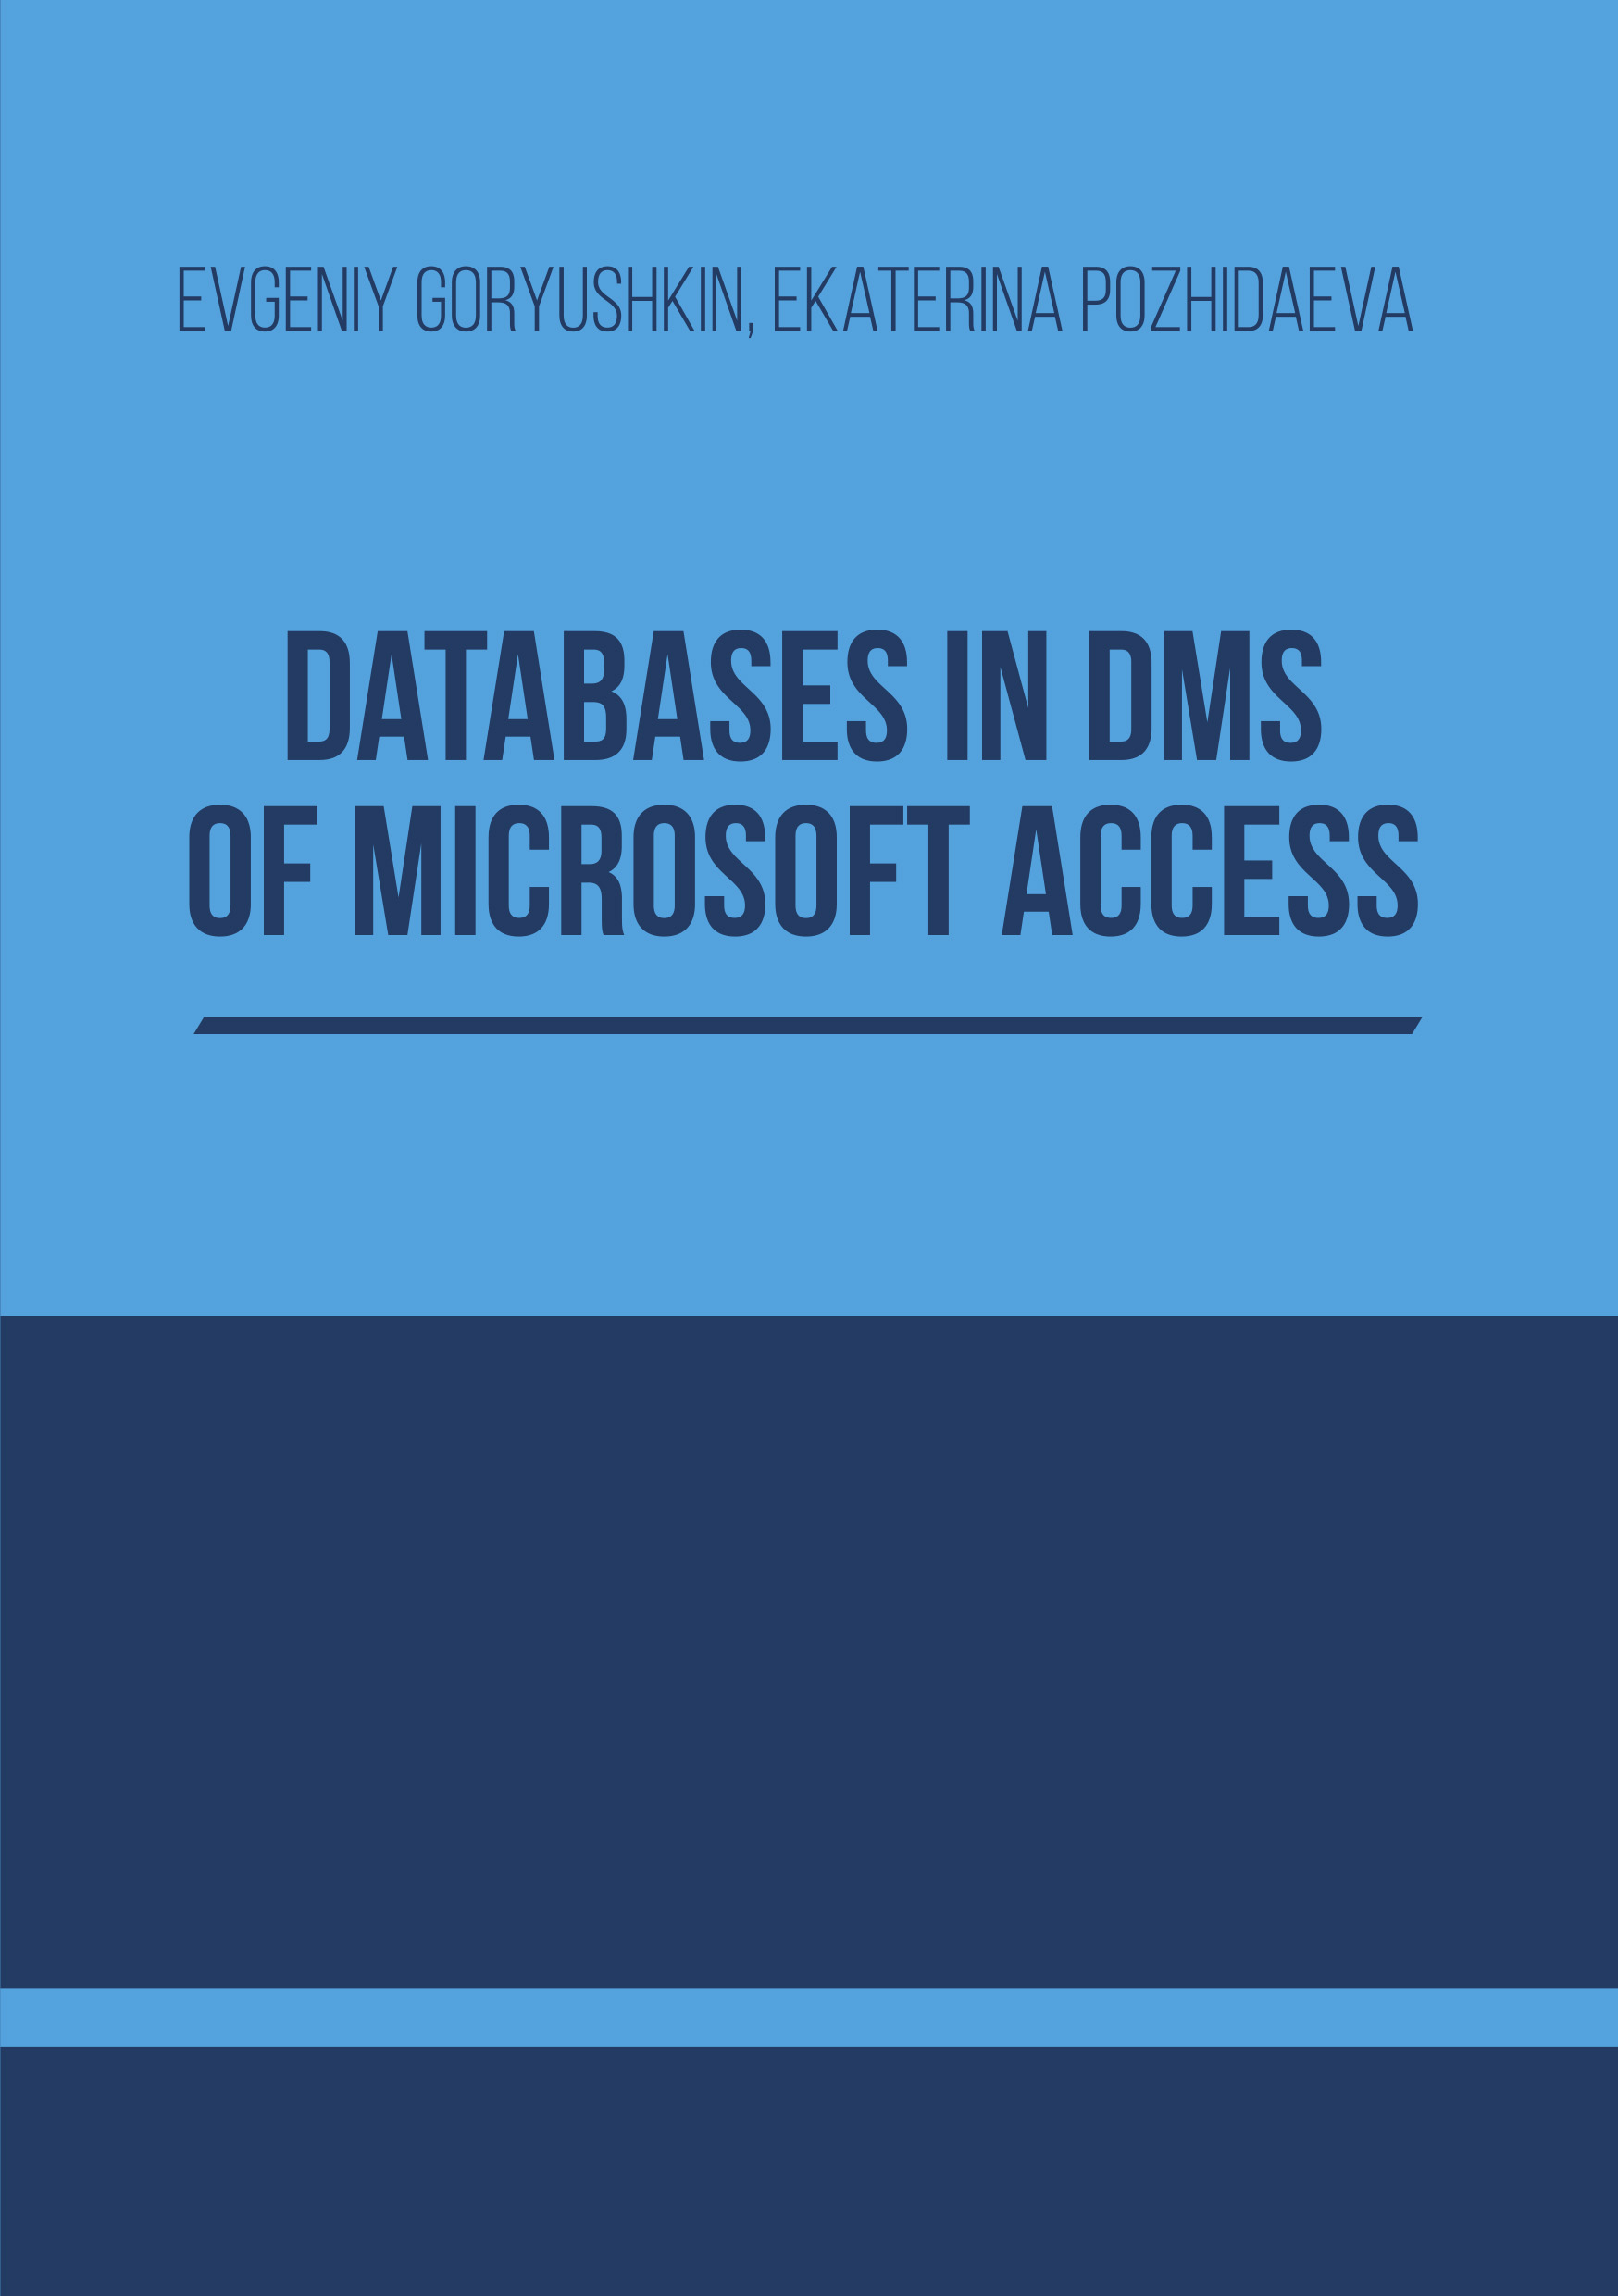 Databases in DMS of Microsoft Access: methodical handbook on computer science